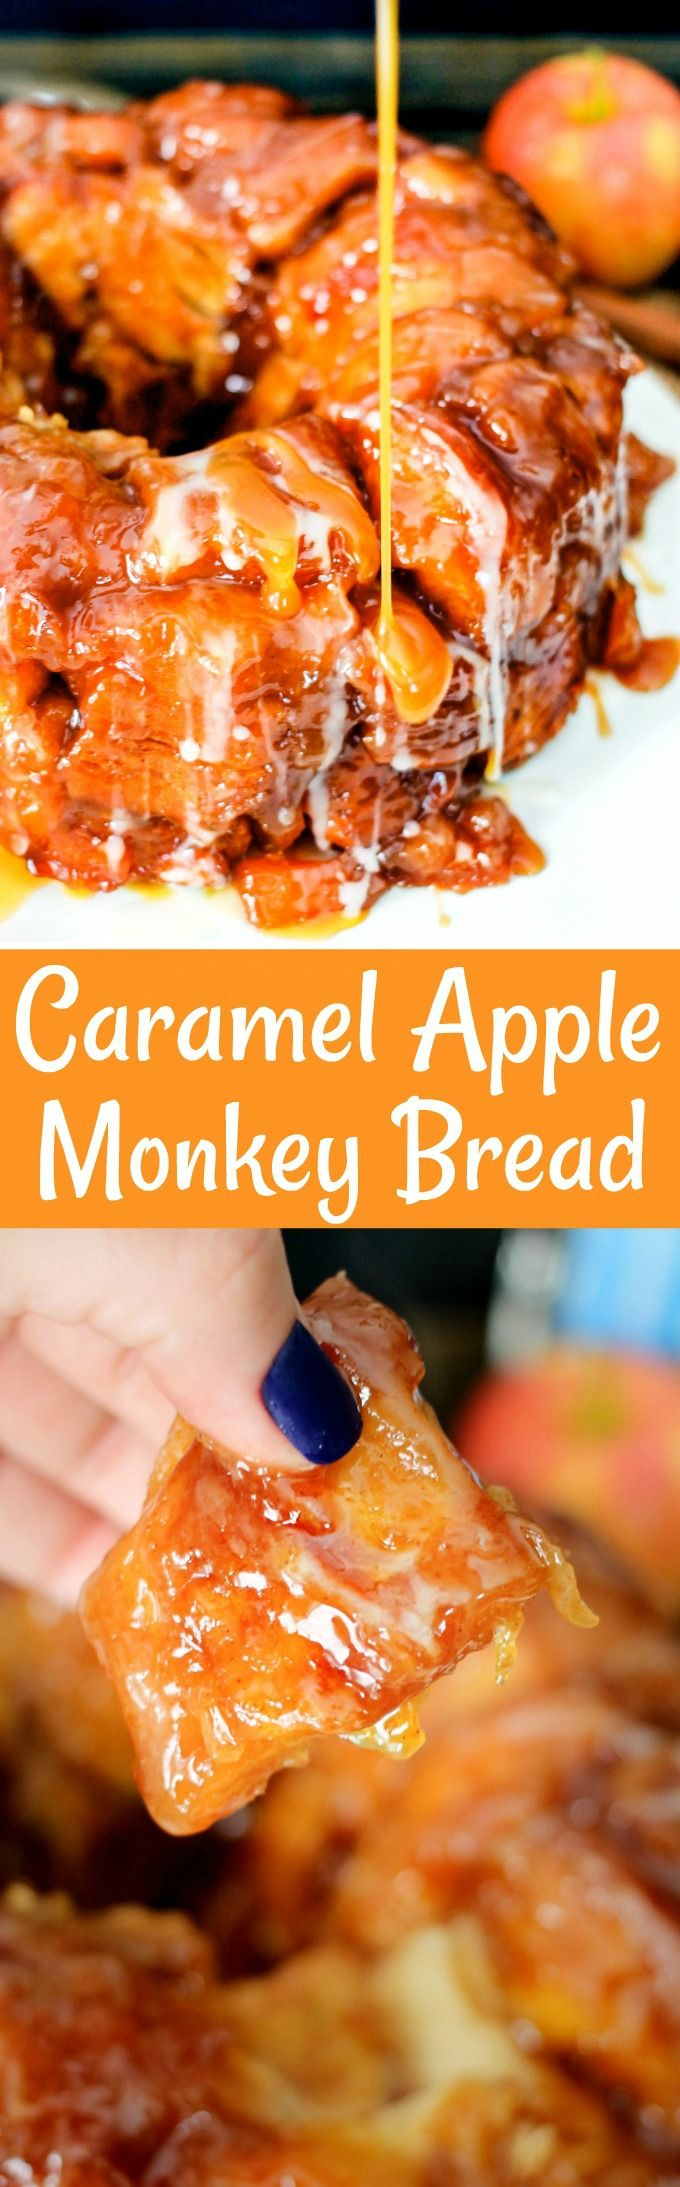 Loaded with caramel, apples, and brown sugar, this Caramel Apple Monkey Bread will be everyone's favorite fall treat! Serve it for breakfast or dessert!